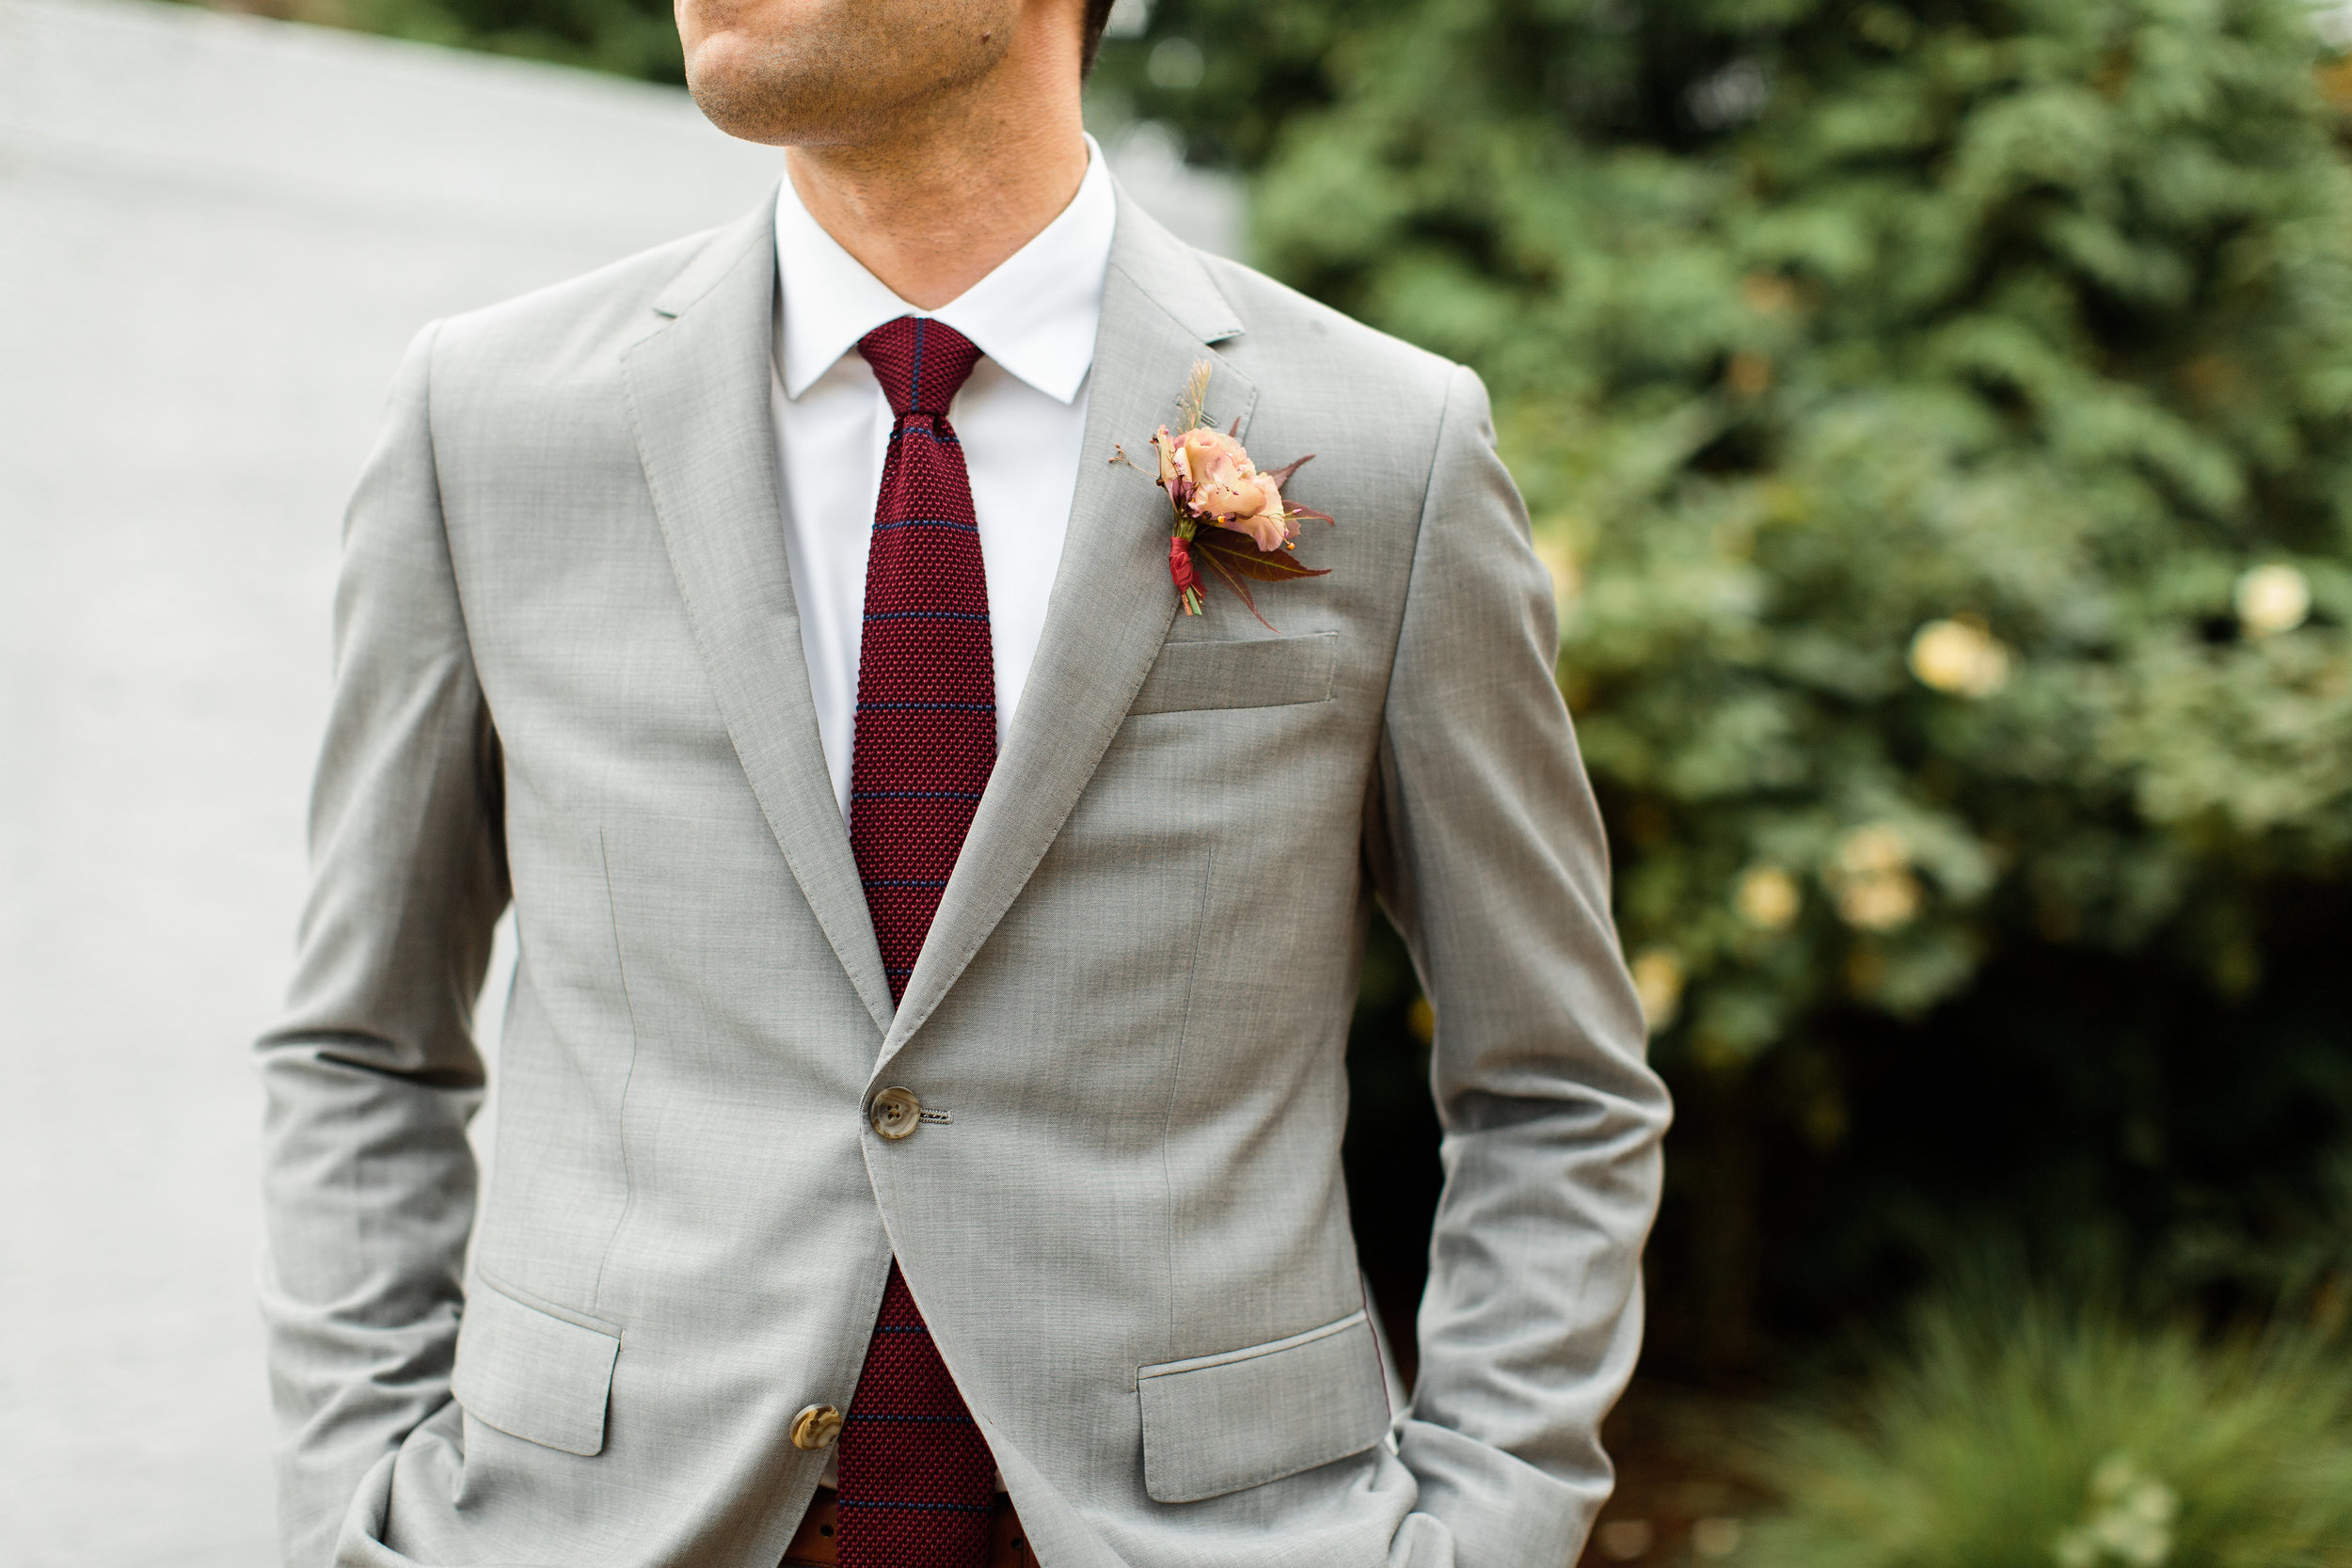 Grey suit with a maroon tie for the groom at Stony Creek Brewery - Pearl Weddings & Events